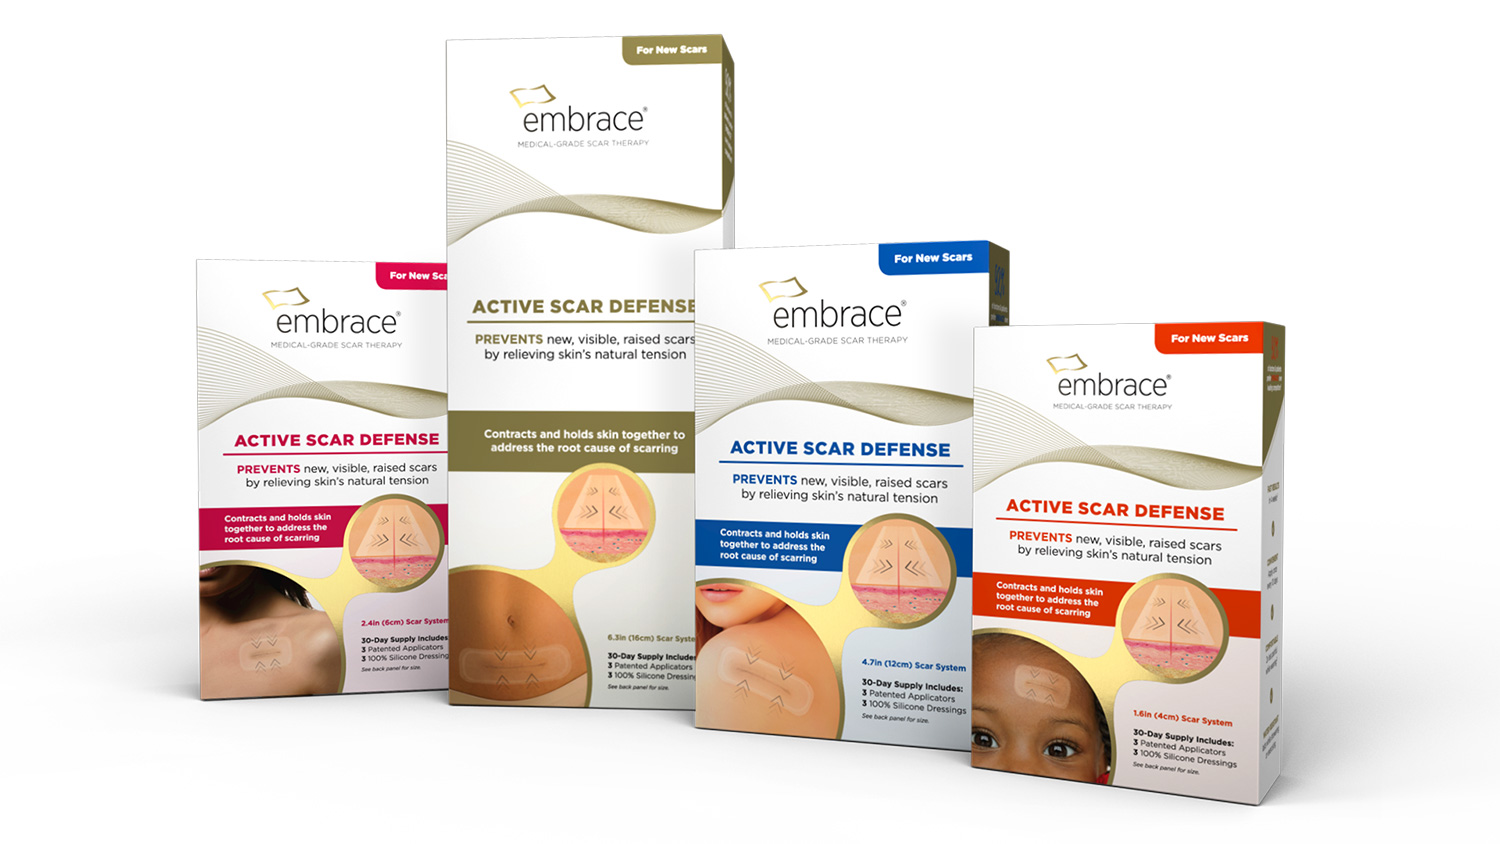 embrace scar therapy. embrace® active scar defense product line. embrace therapy e